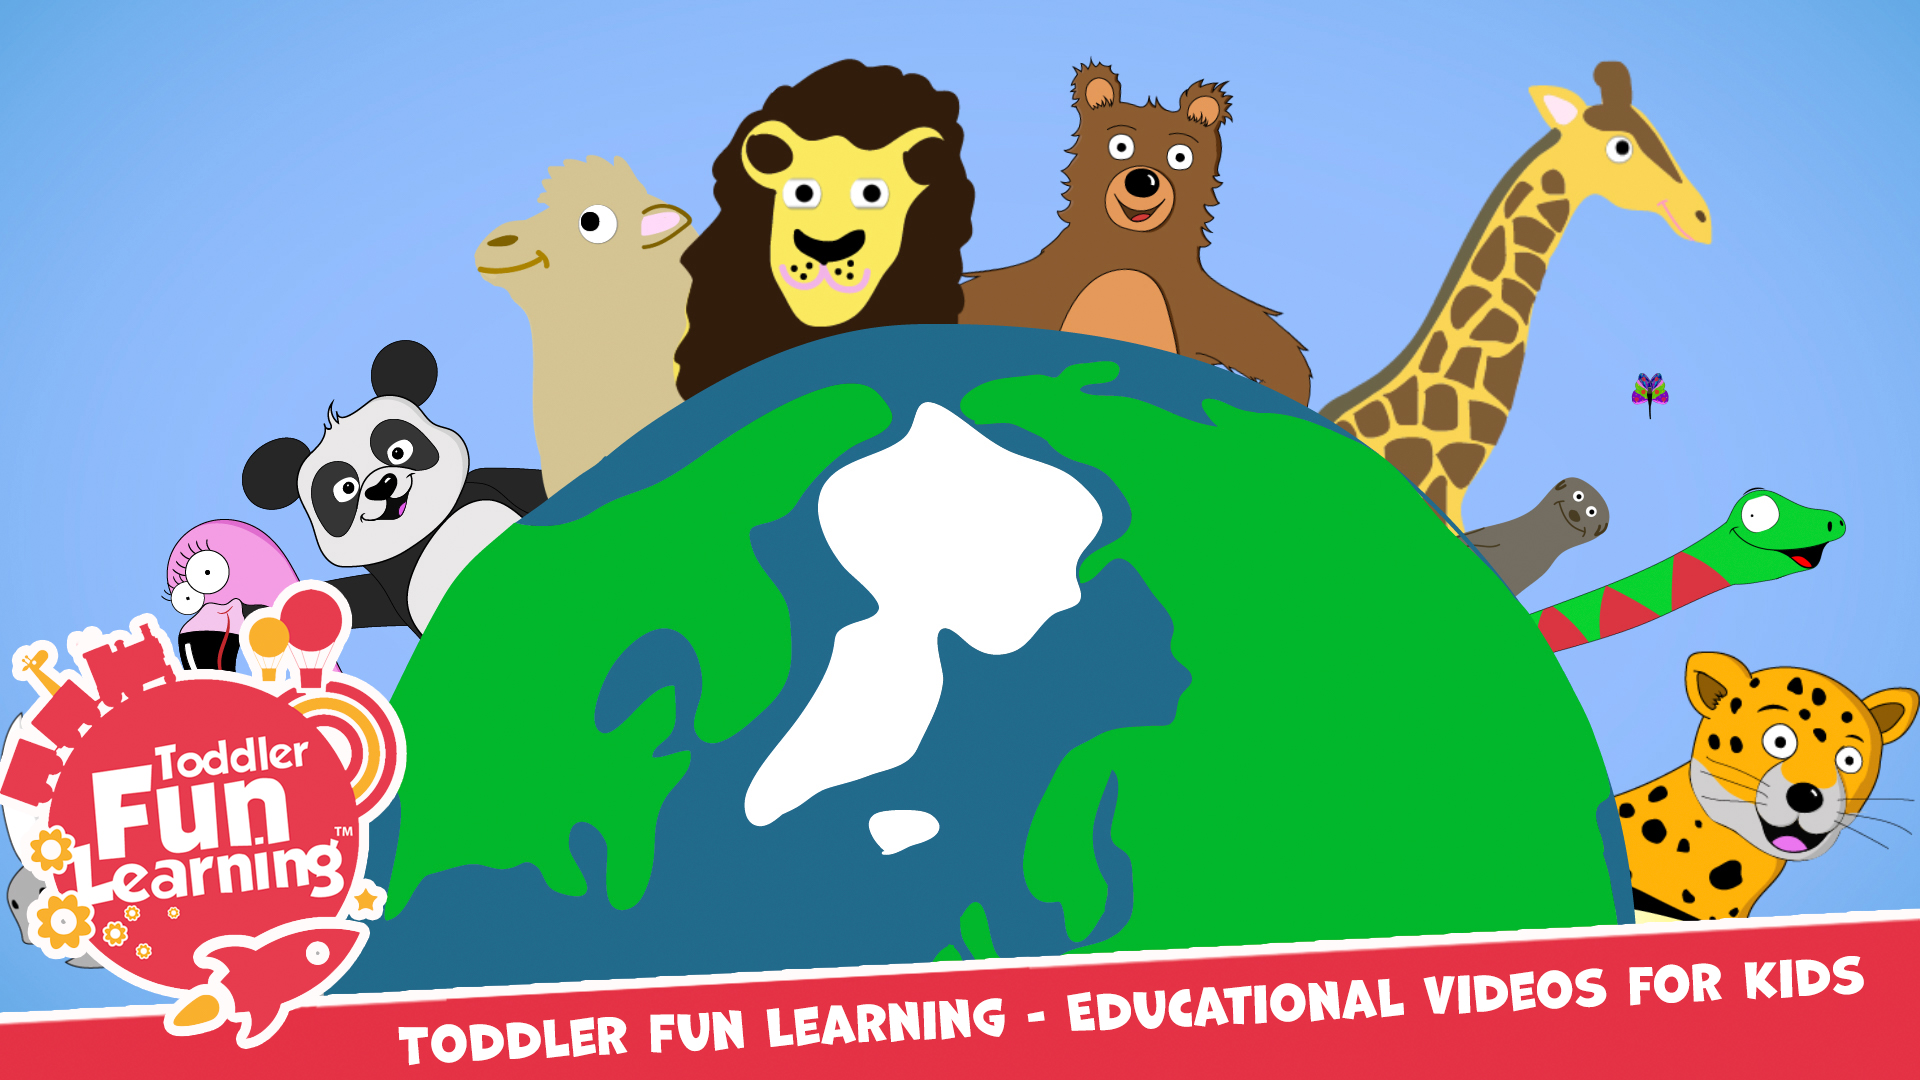 Toddler Fun Learning - Educational Videos for Kids